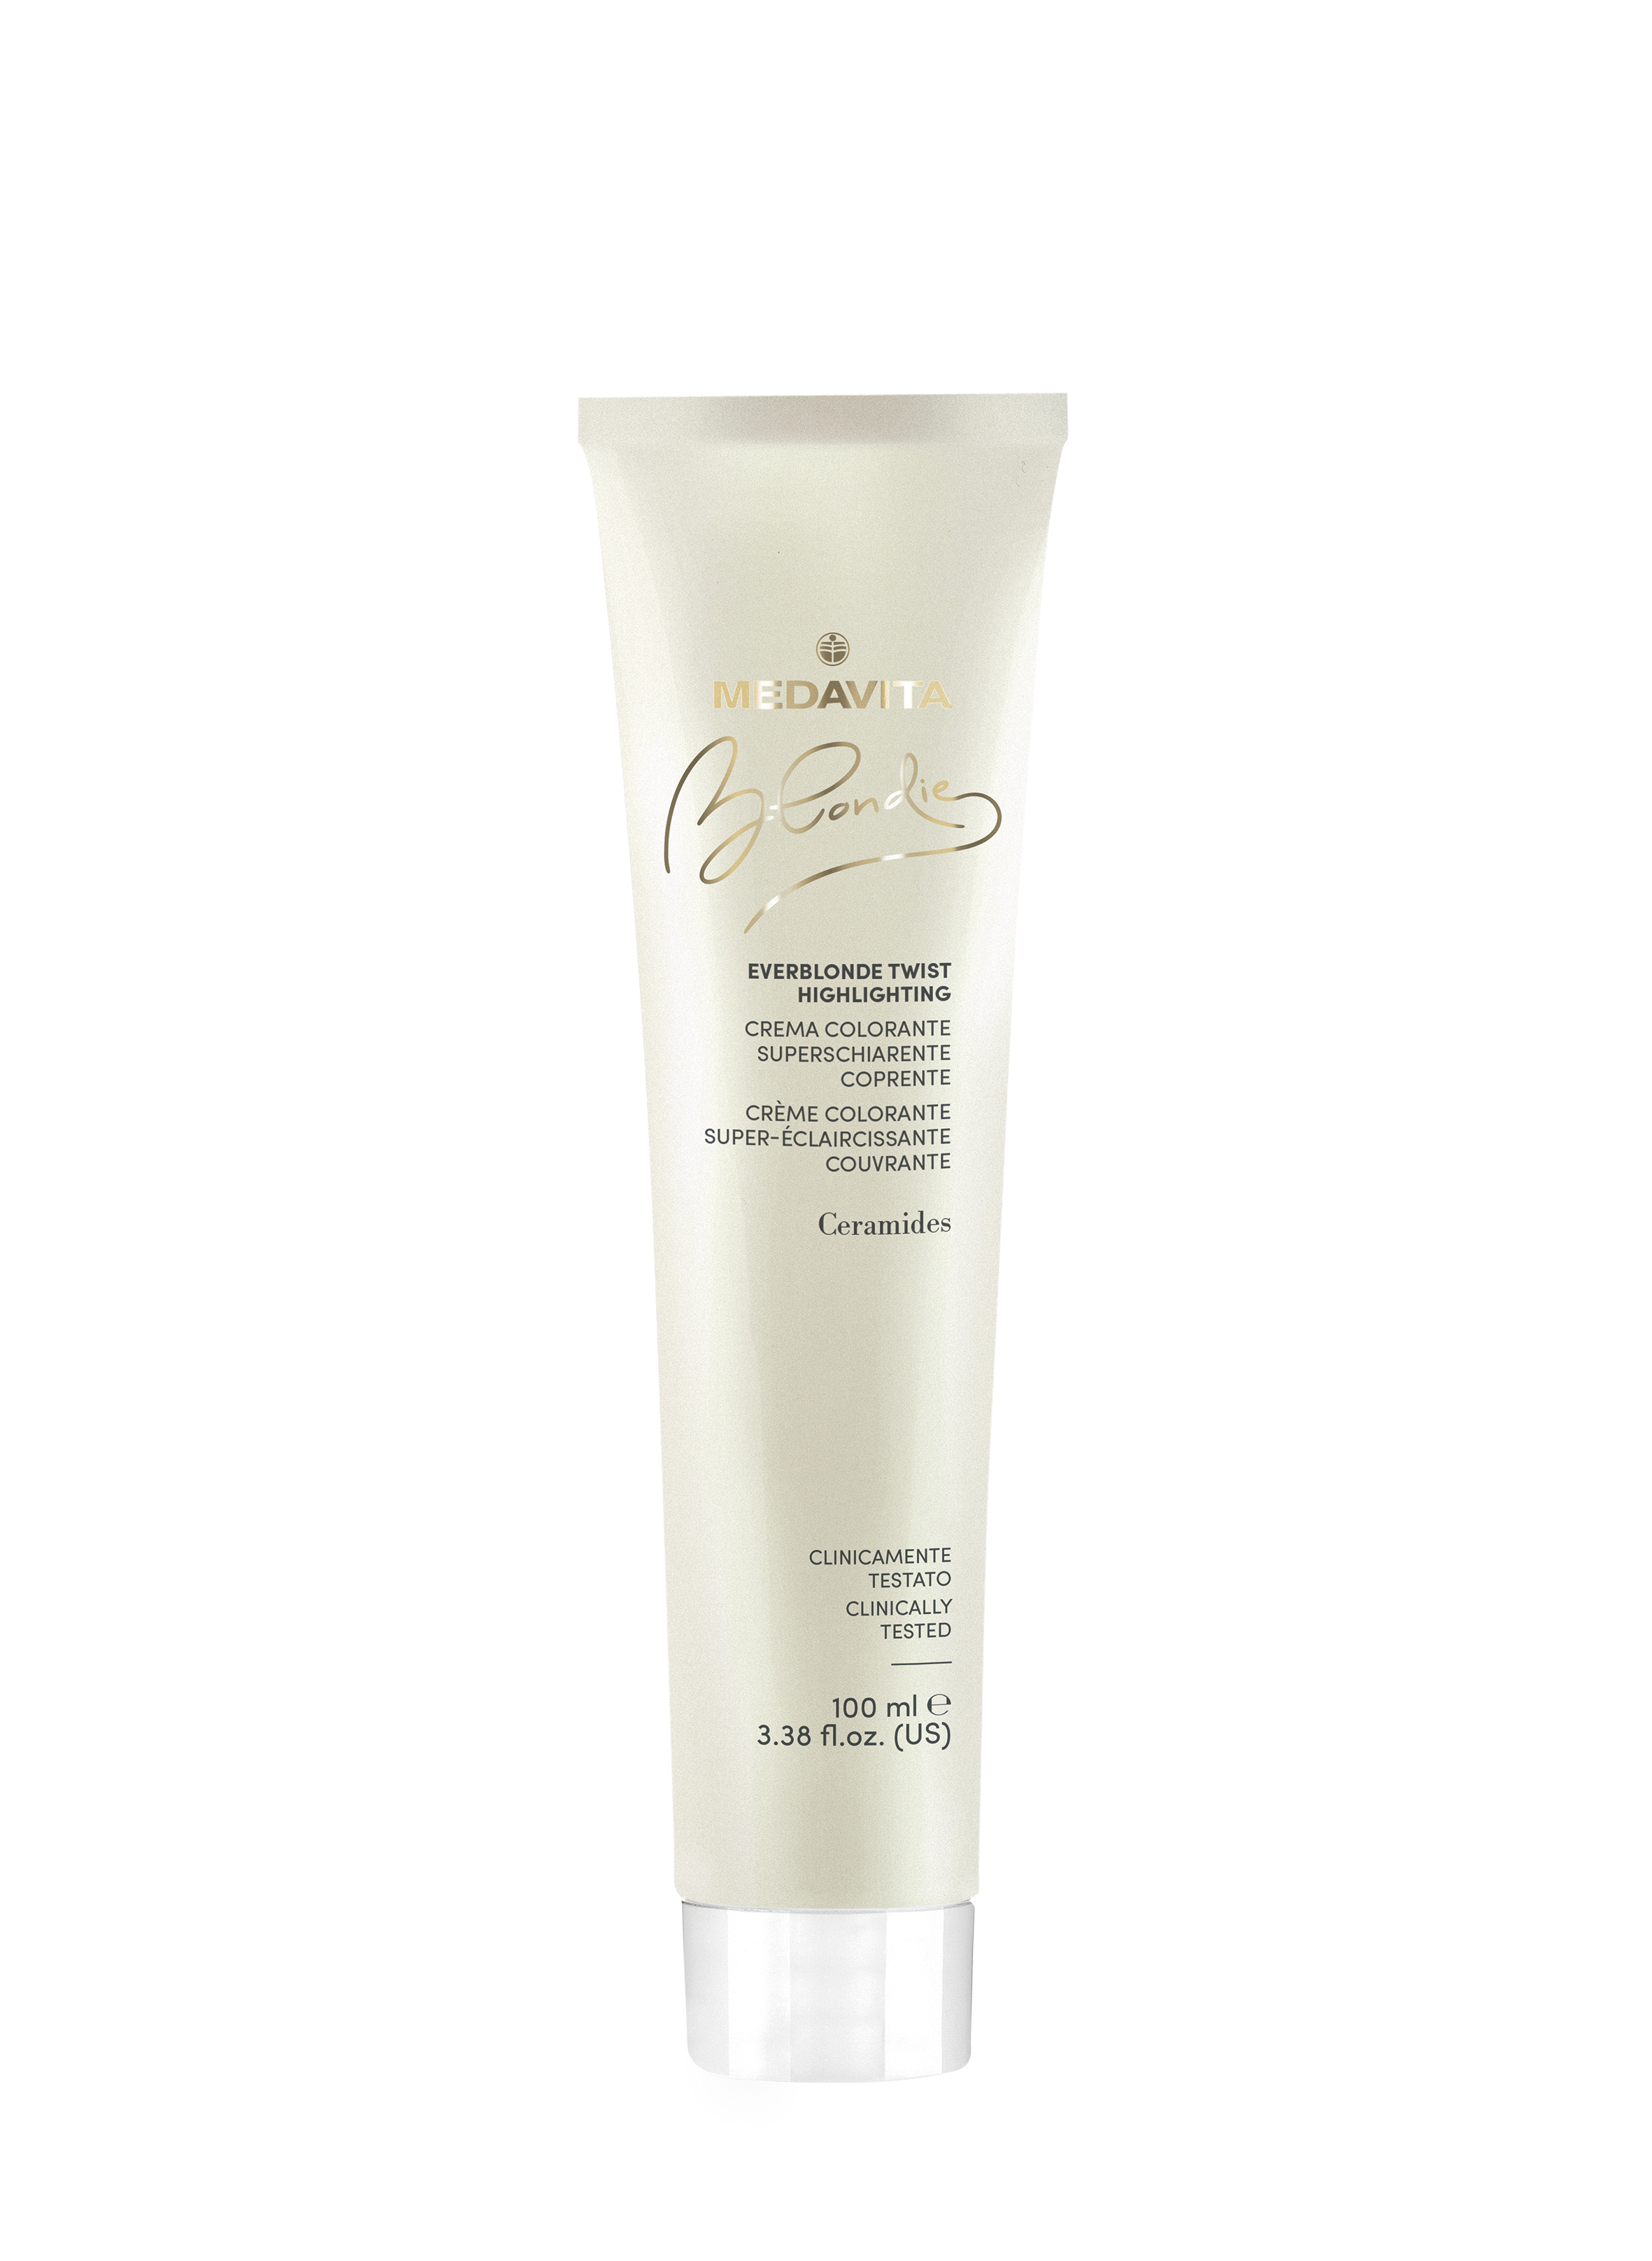 Blondie Tubo Everblonde Twist Highlighting 100ml